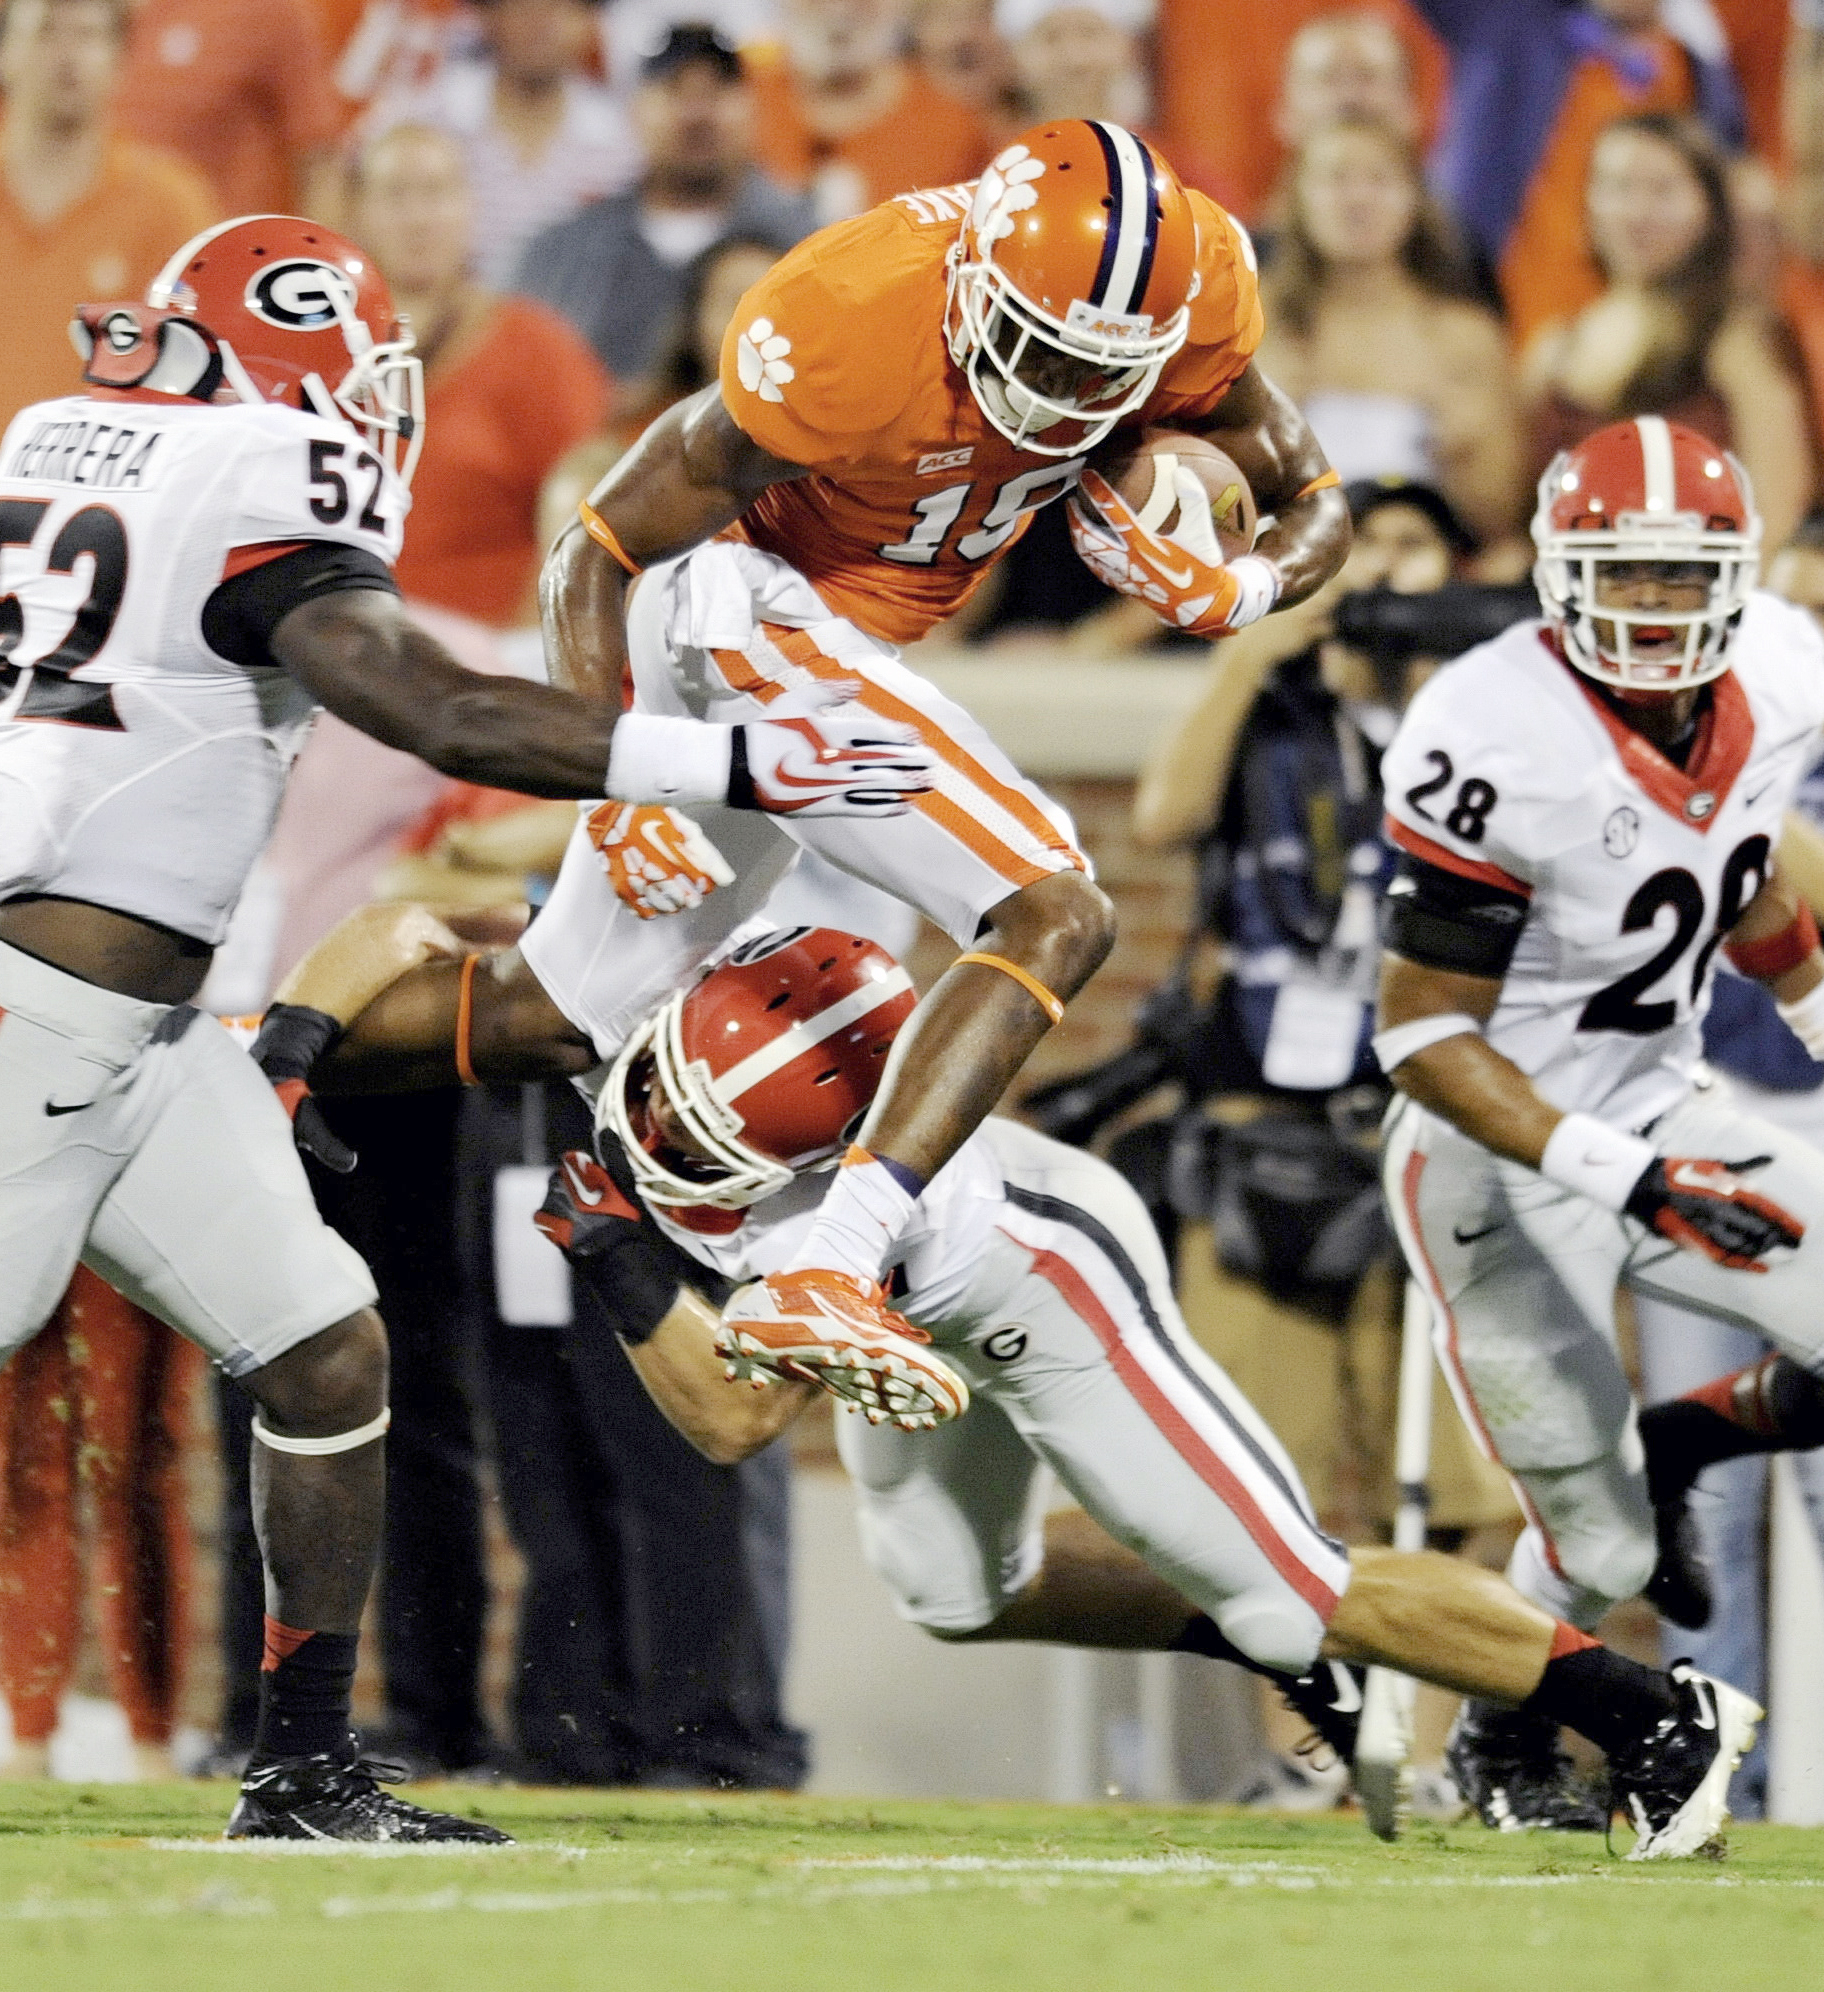 Clemson's Charone Peake leaps through the tackle of Georgia's Connor Norman while being pursued by Amarlo Herrera. (AP Photo/Richard Shiro)